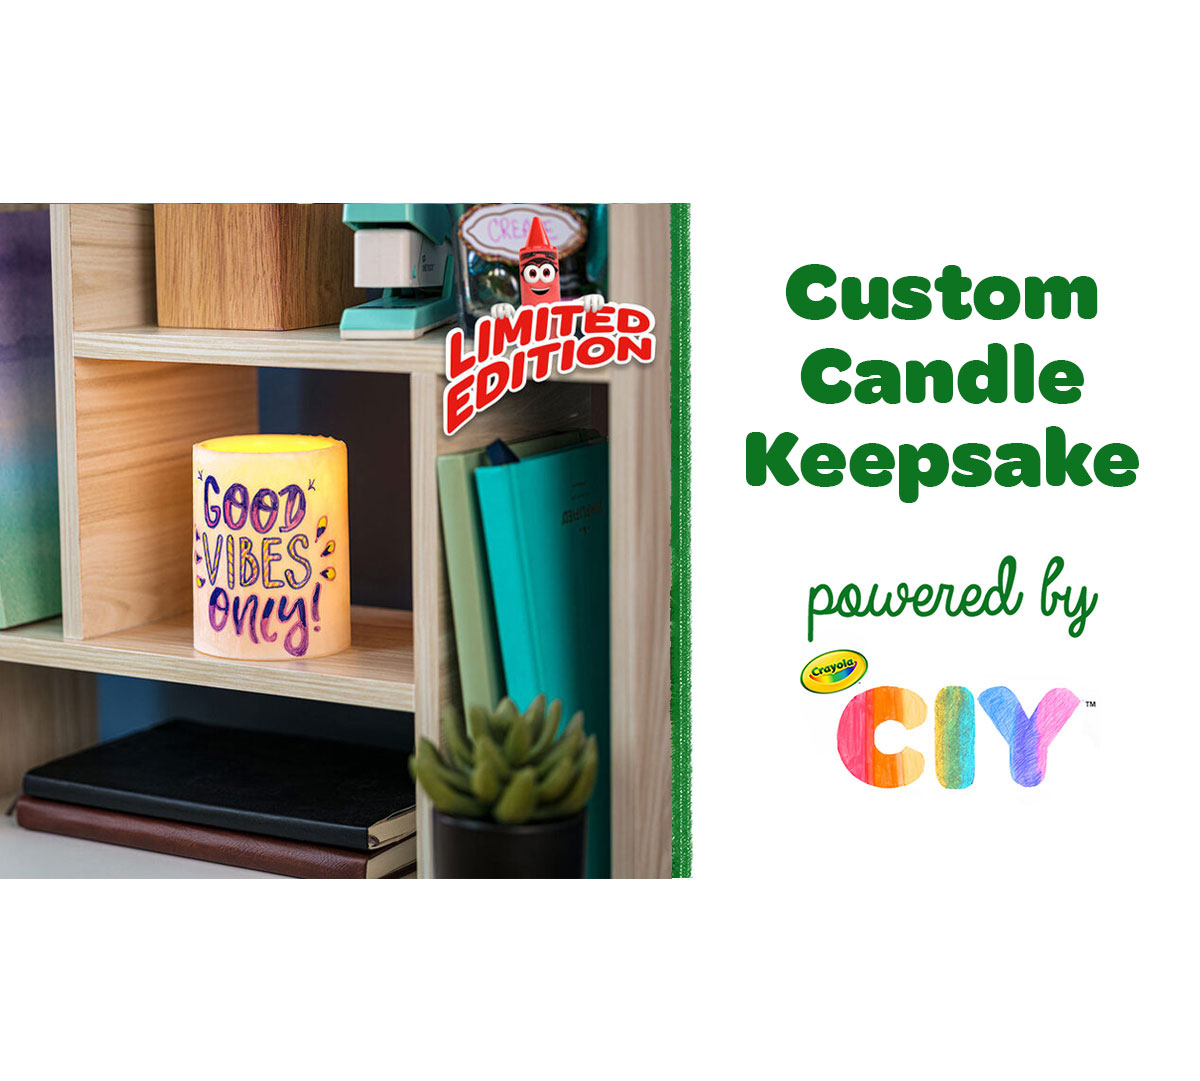 Custom Candle Keepsake Craft Kit Components in Box